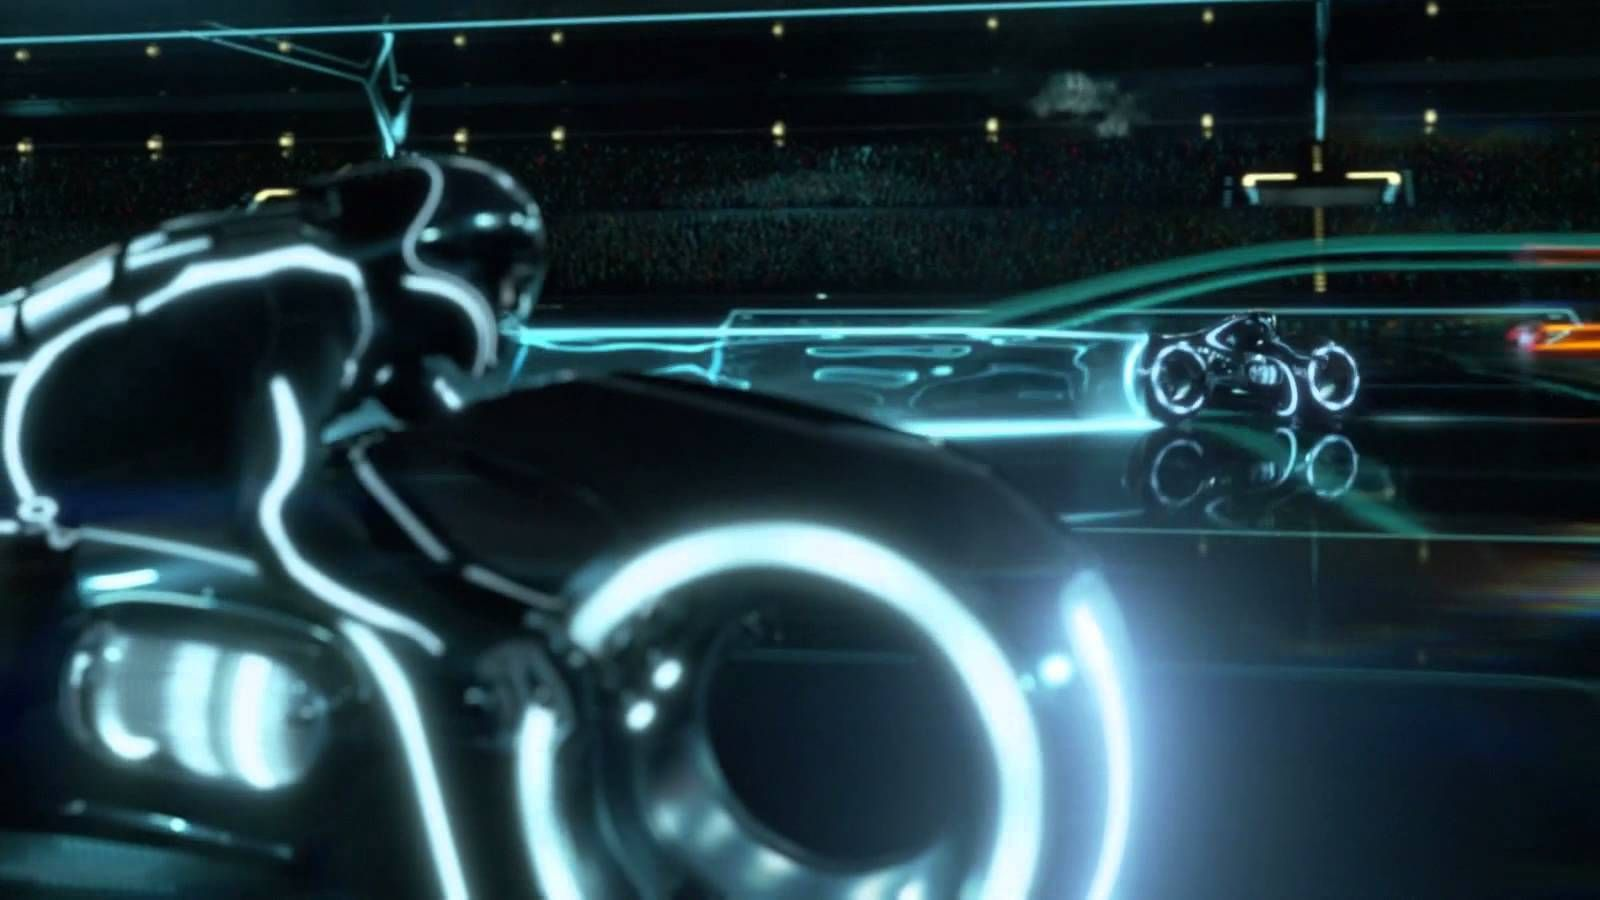 The Tron Light Bikes Scene Is Also Great For Submoments Tron